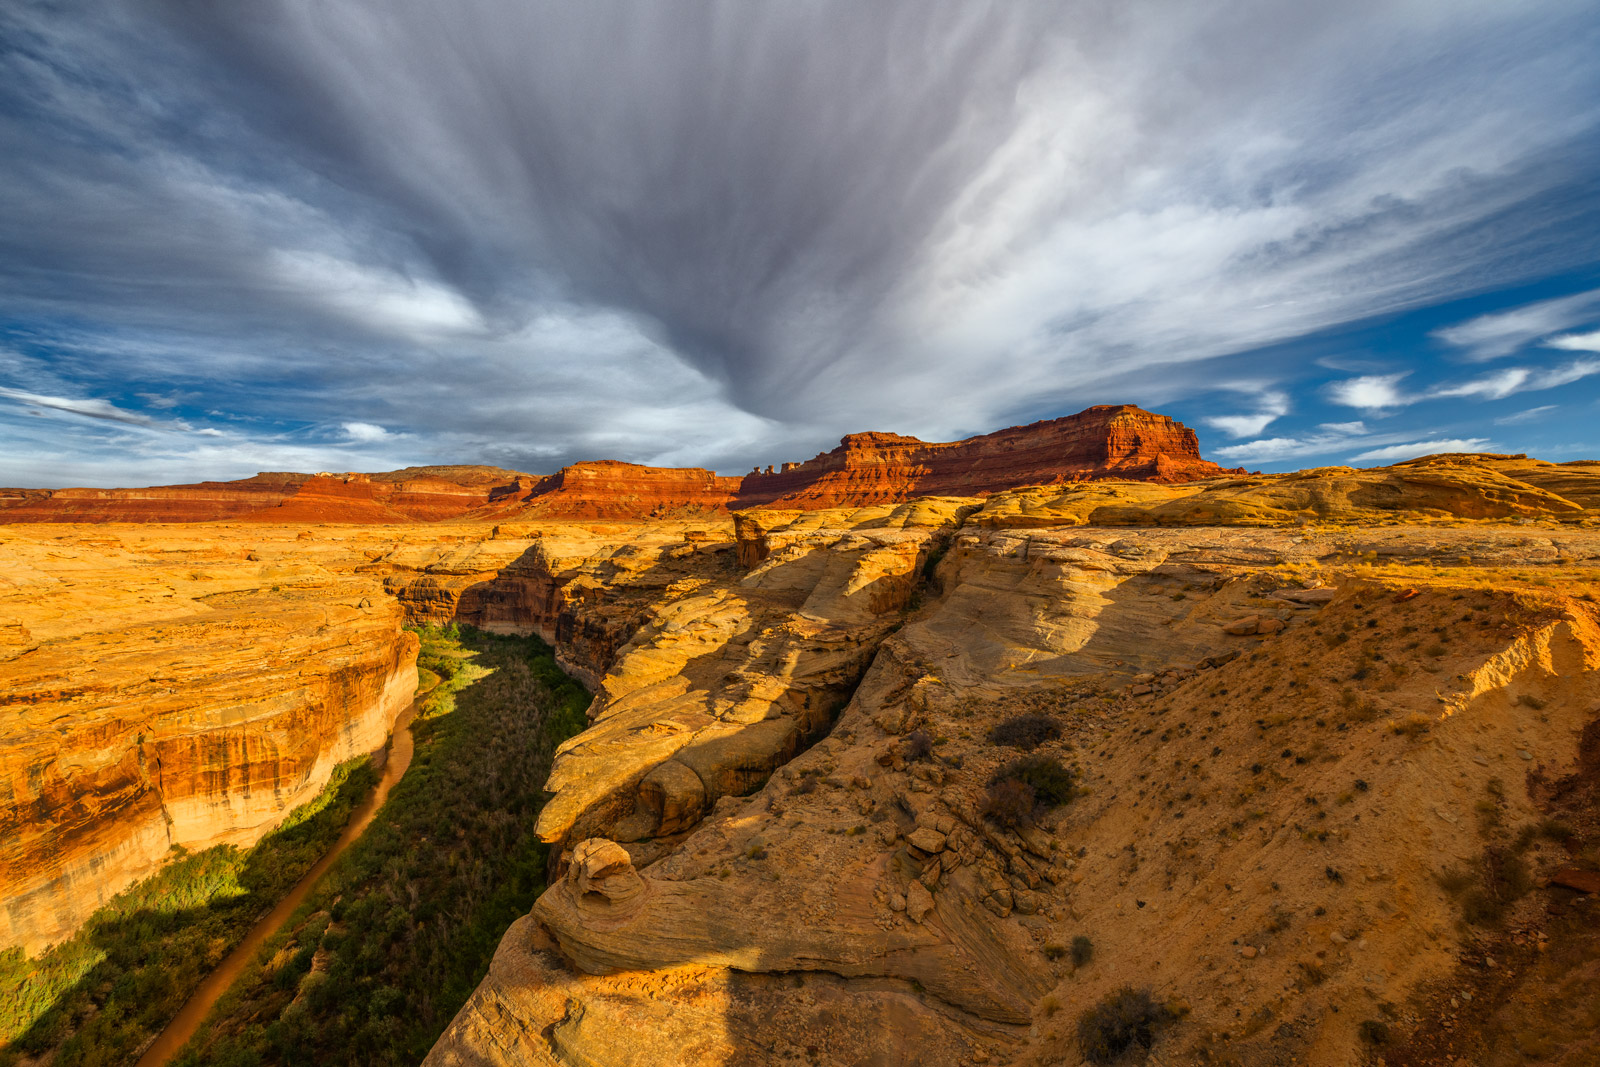 Utah, Hite, Canyon, Red Rock, River, photo